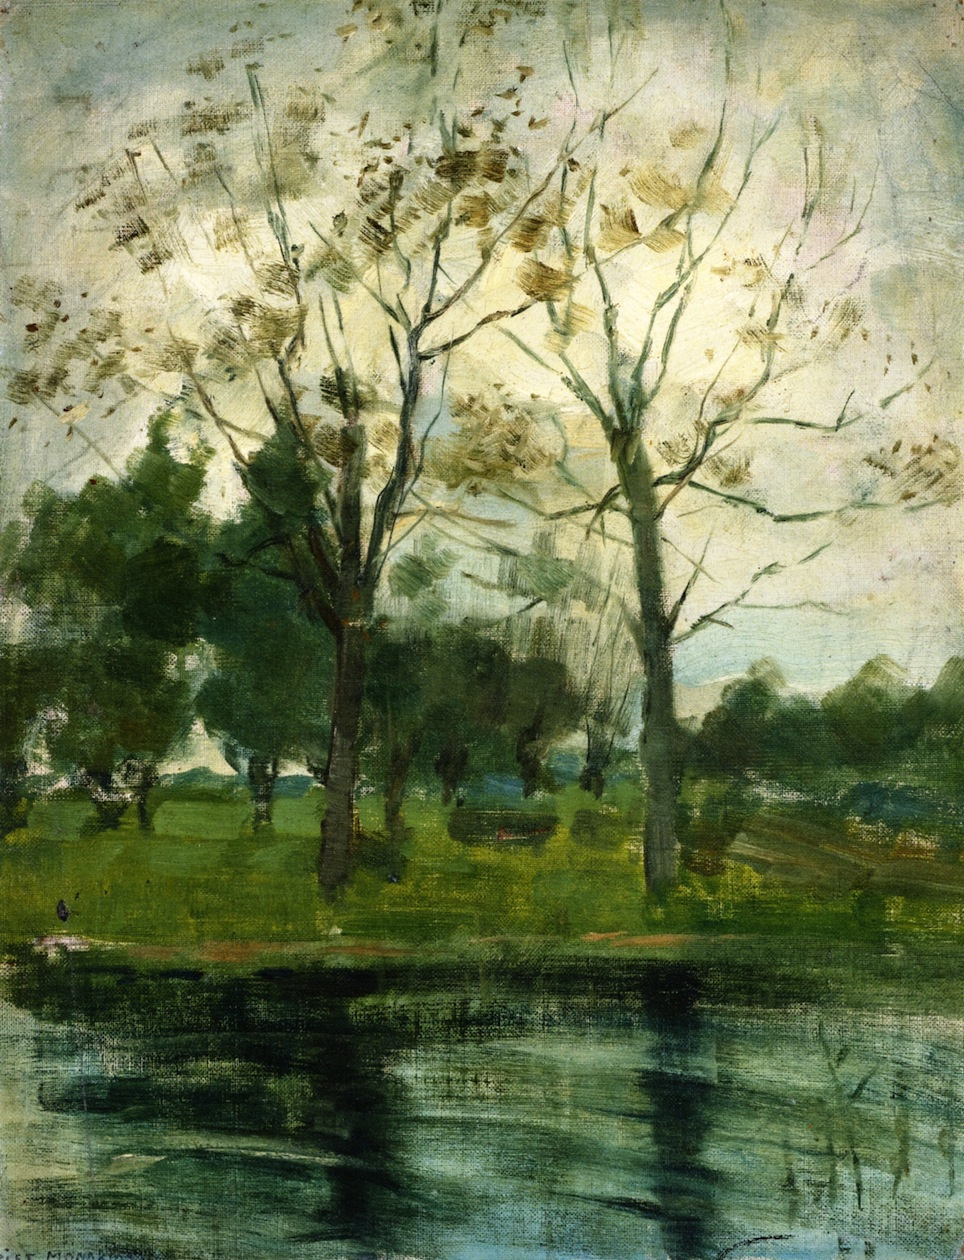 Piet Mondrian. Two trees by the river